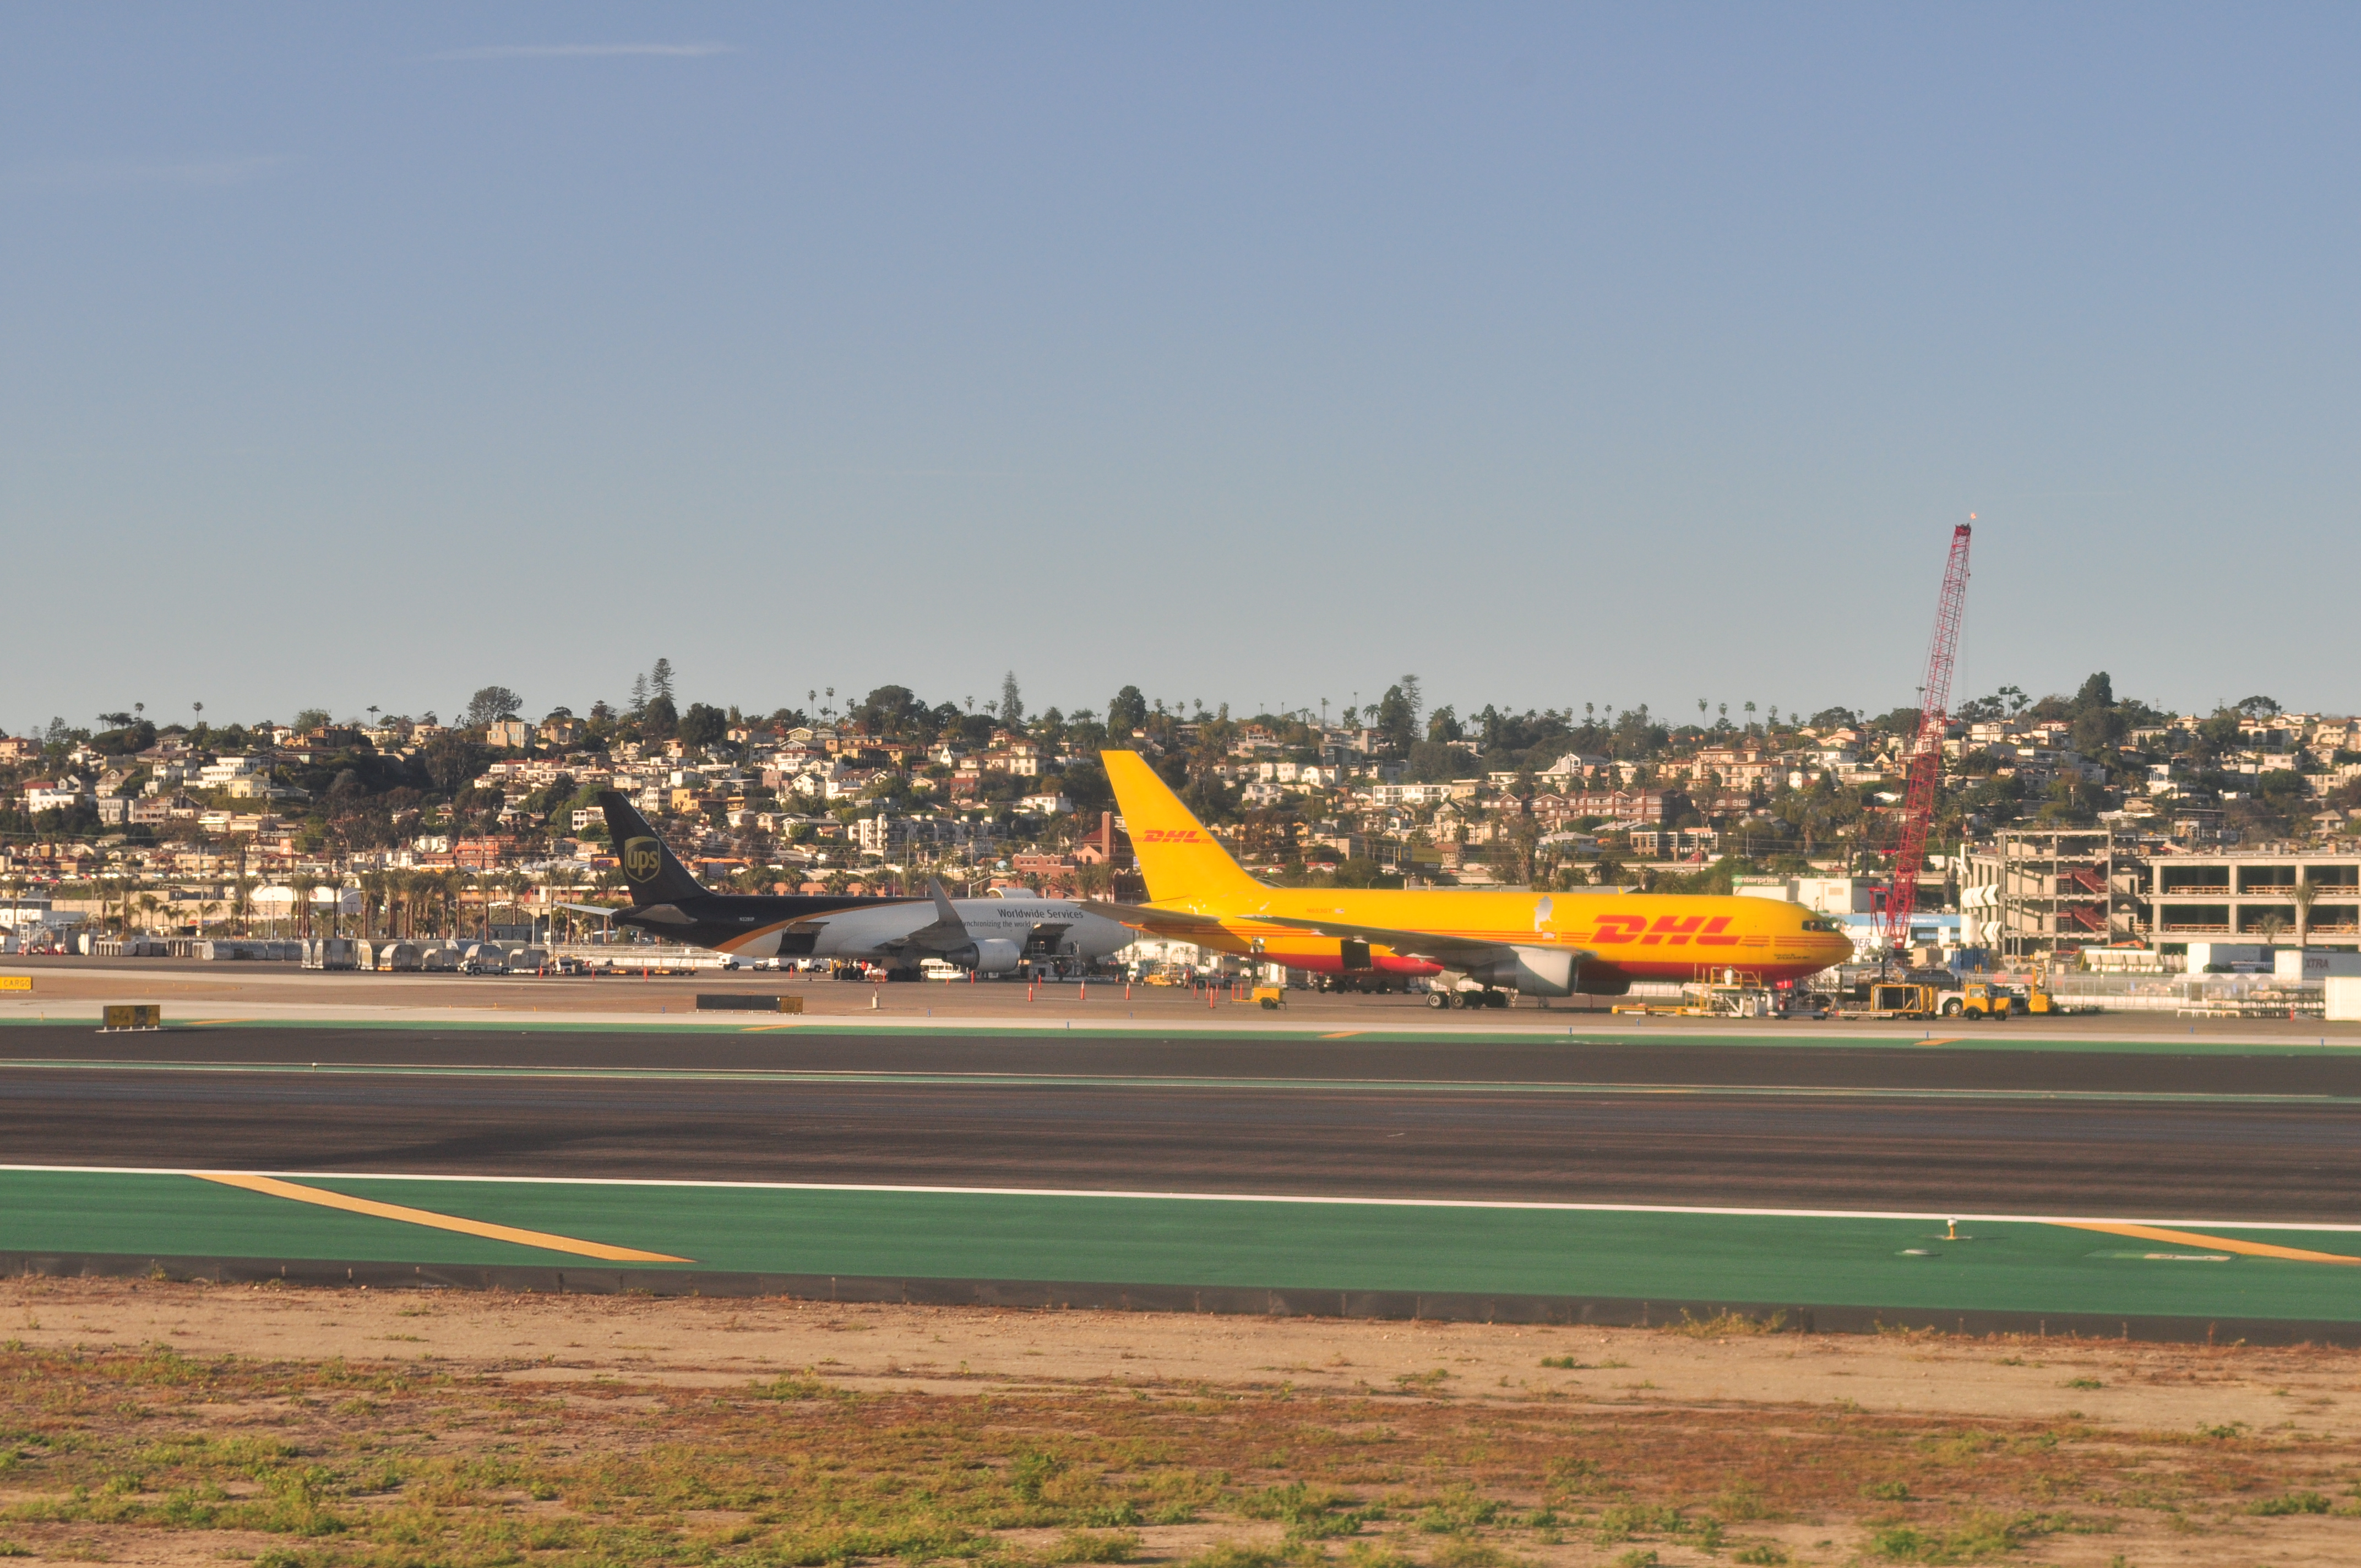 file:dhl & ups jets at san diego international airport 01